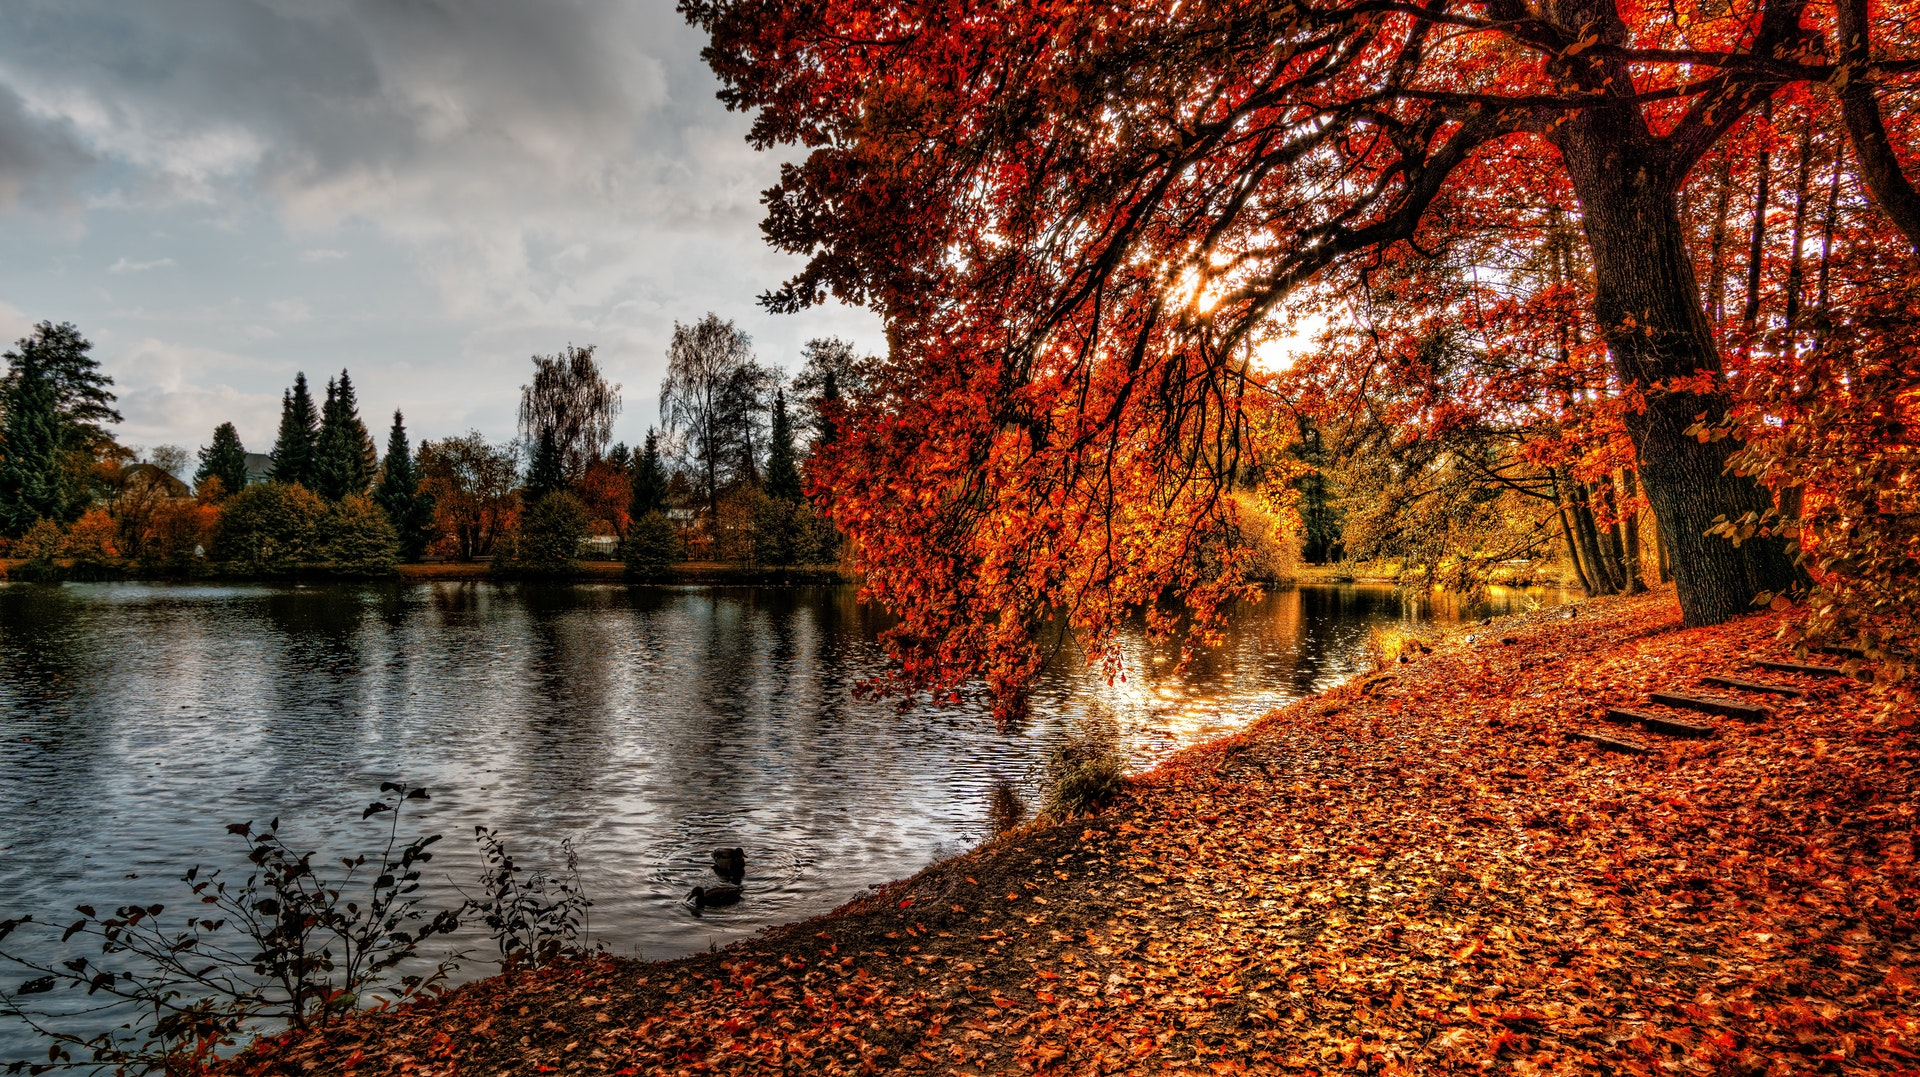 Autumn-1920x1080-wallpaper-wp3602831